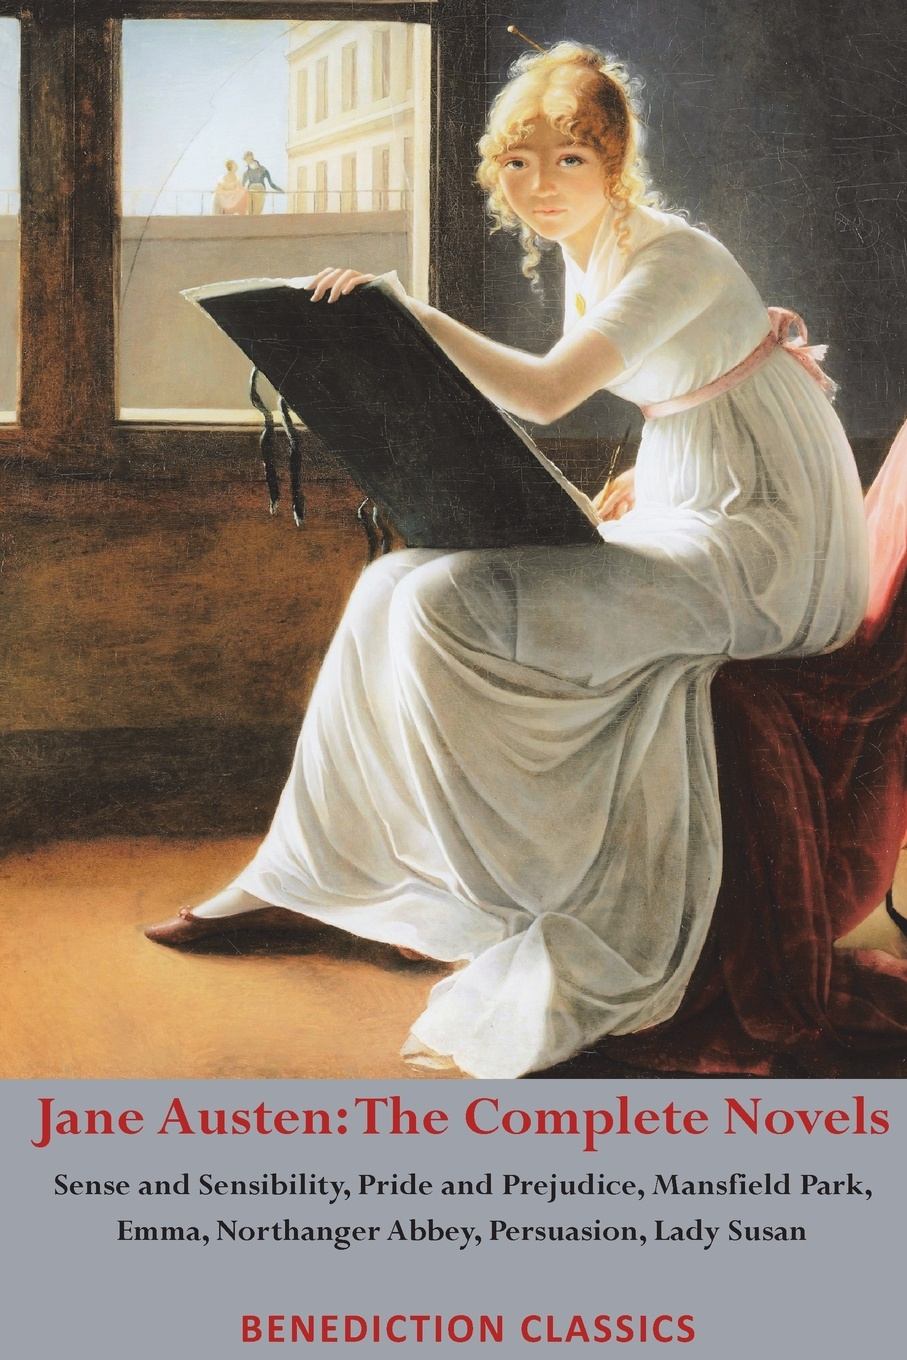 Jane Austen Jane Austen. The Complete Novels: Sense and Sensibility, Pride and Prejudice, Mansfield Park, Emma, Northanger Abbey, Persuasion, Lady Susan jane austen the novels the text based on collation of the early editions by r w chapman with notes indexes and illus from contemporary sources